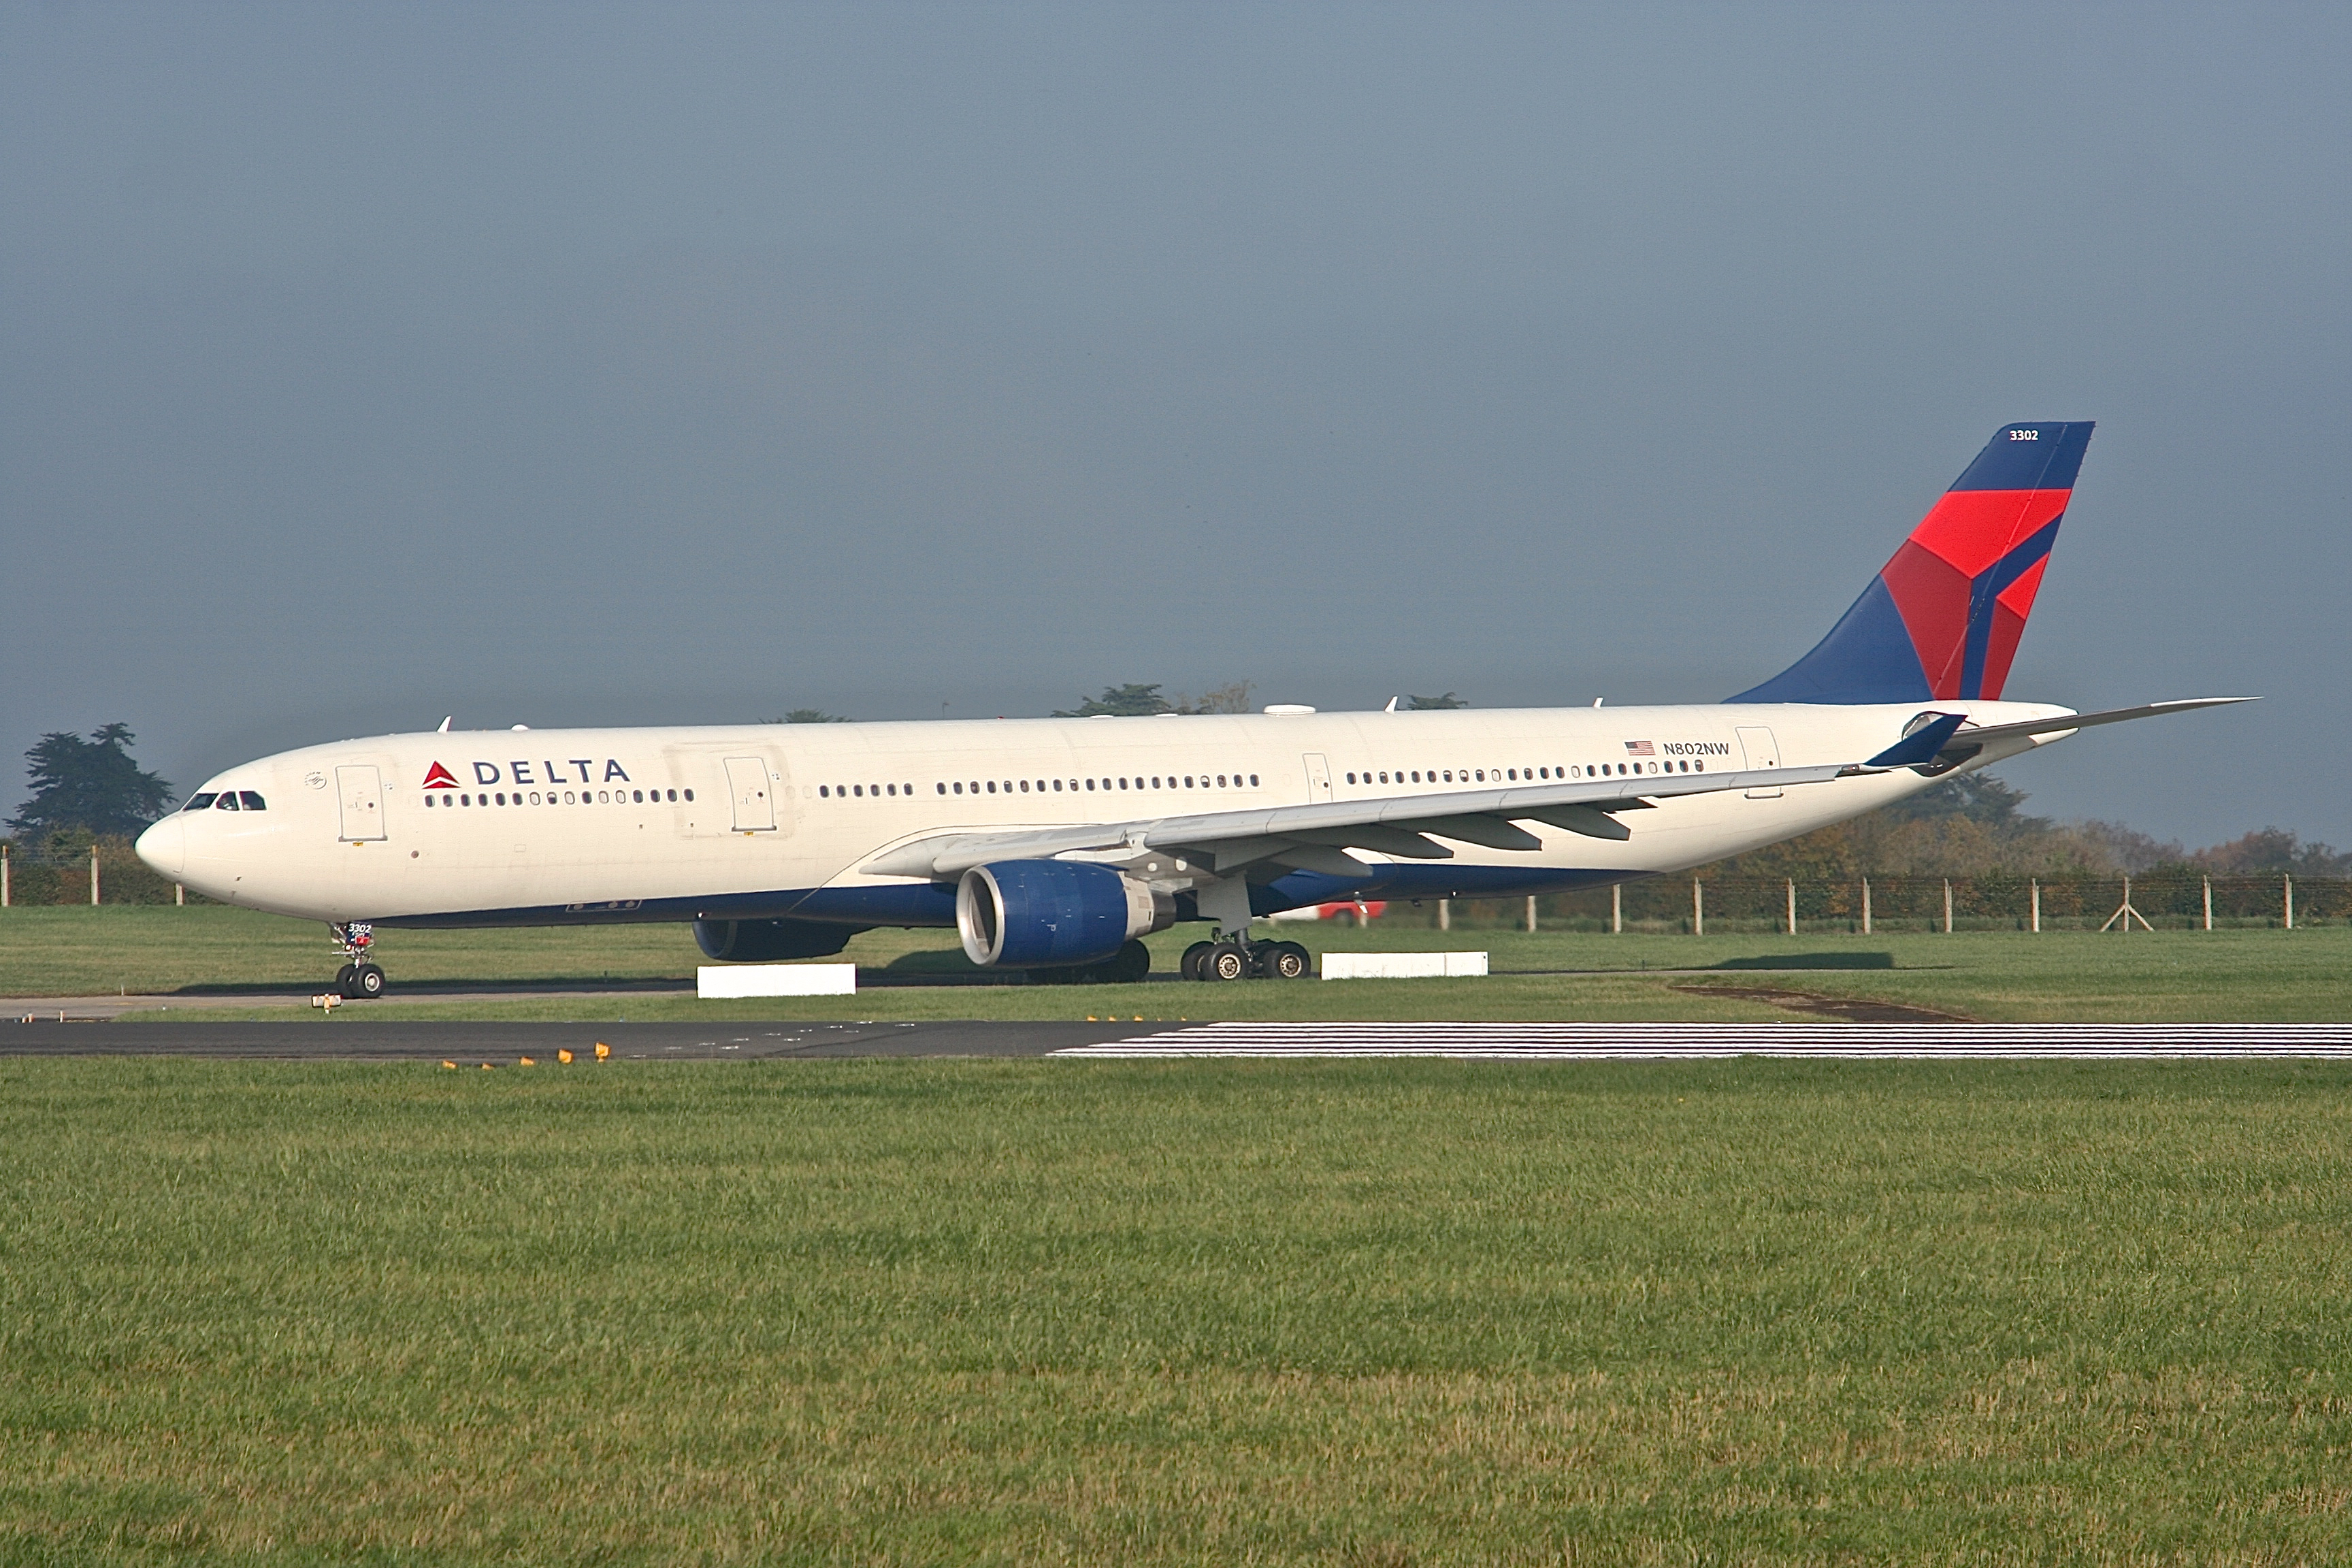 Delta showcases a number of product and service enhancements